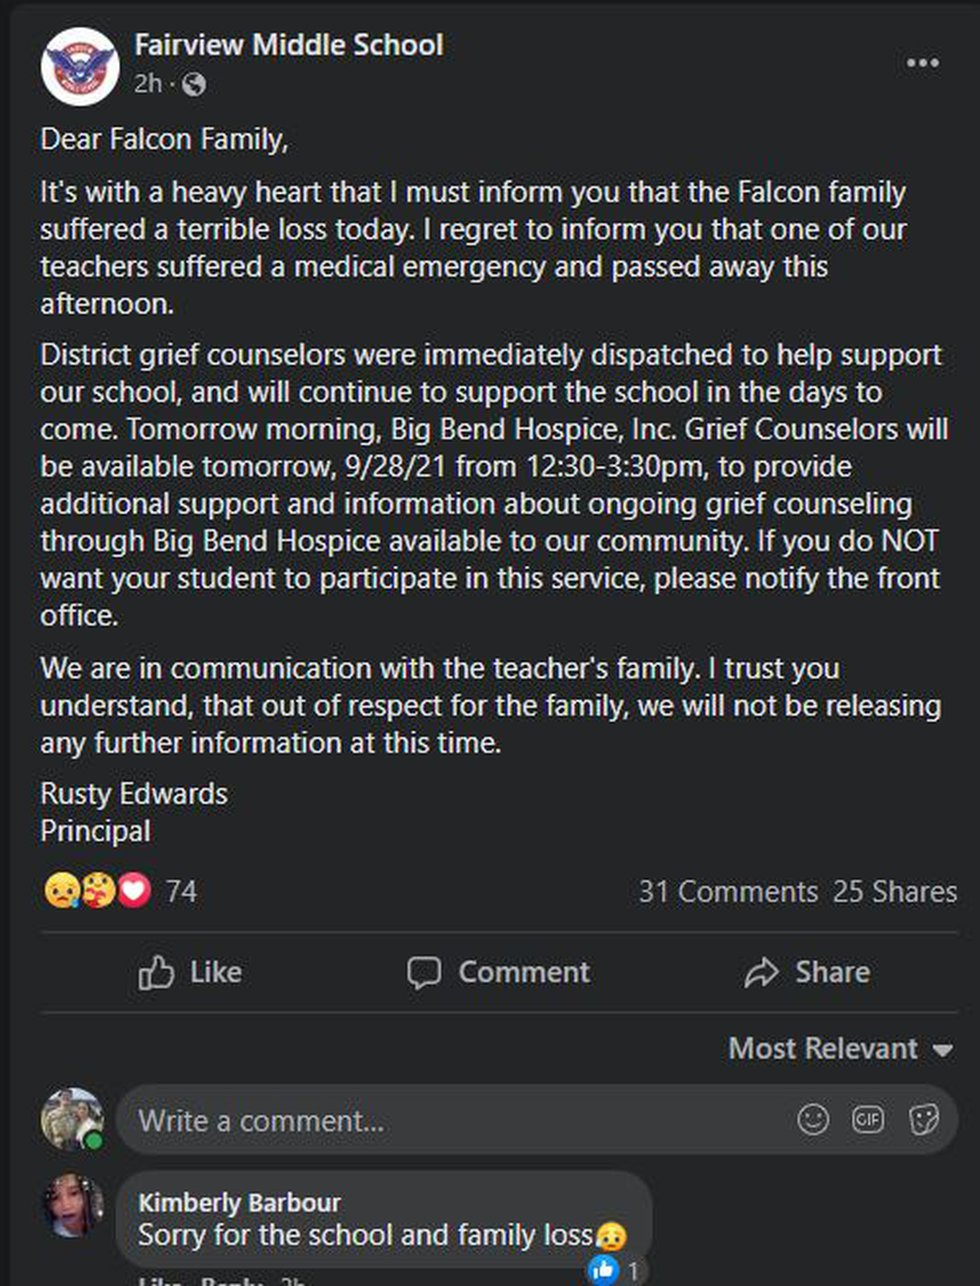 On its official Facebook, the school confirmed the death was due to a medical emergency.